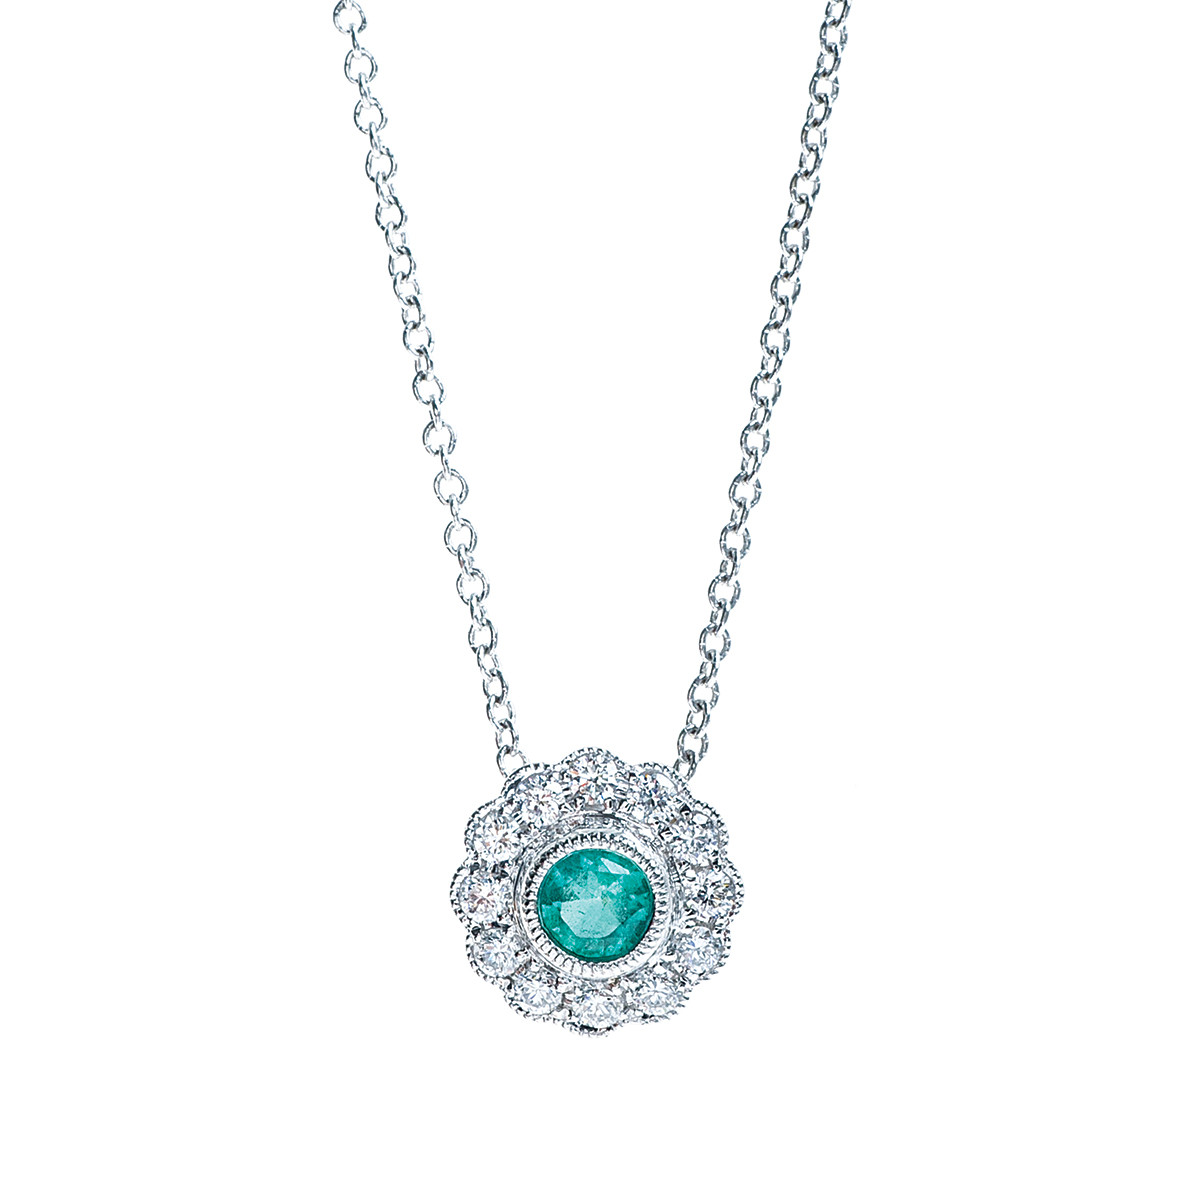 New Emerald & Diamond Halo Necklace